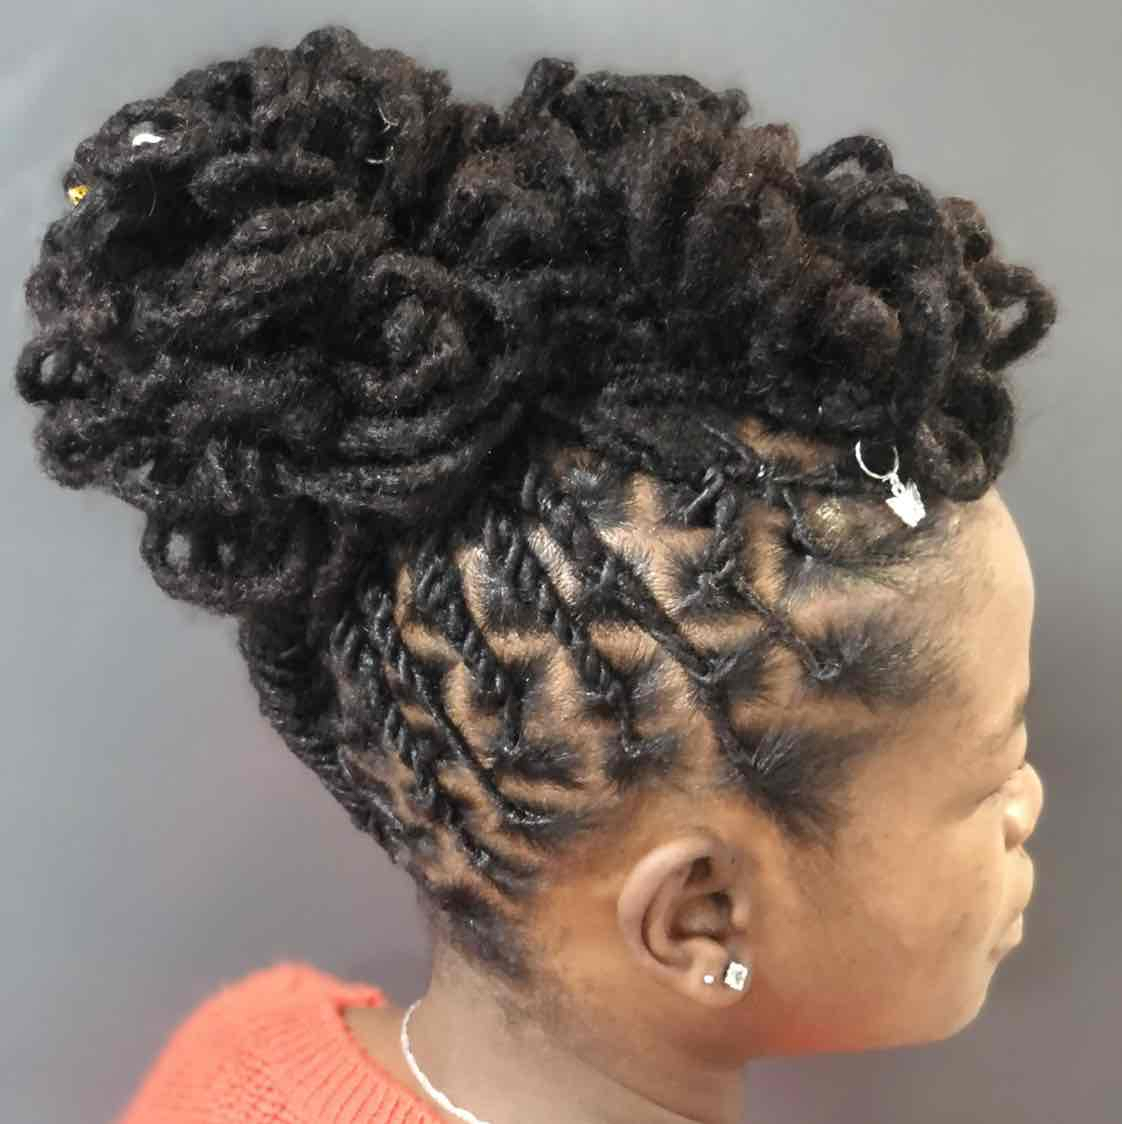 salon de coiffure afro tresse tresses box braids crochet braids vanilles tissages paris 75 77 78 91 92 93 94 95 ILHSUKTB